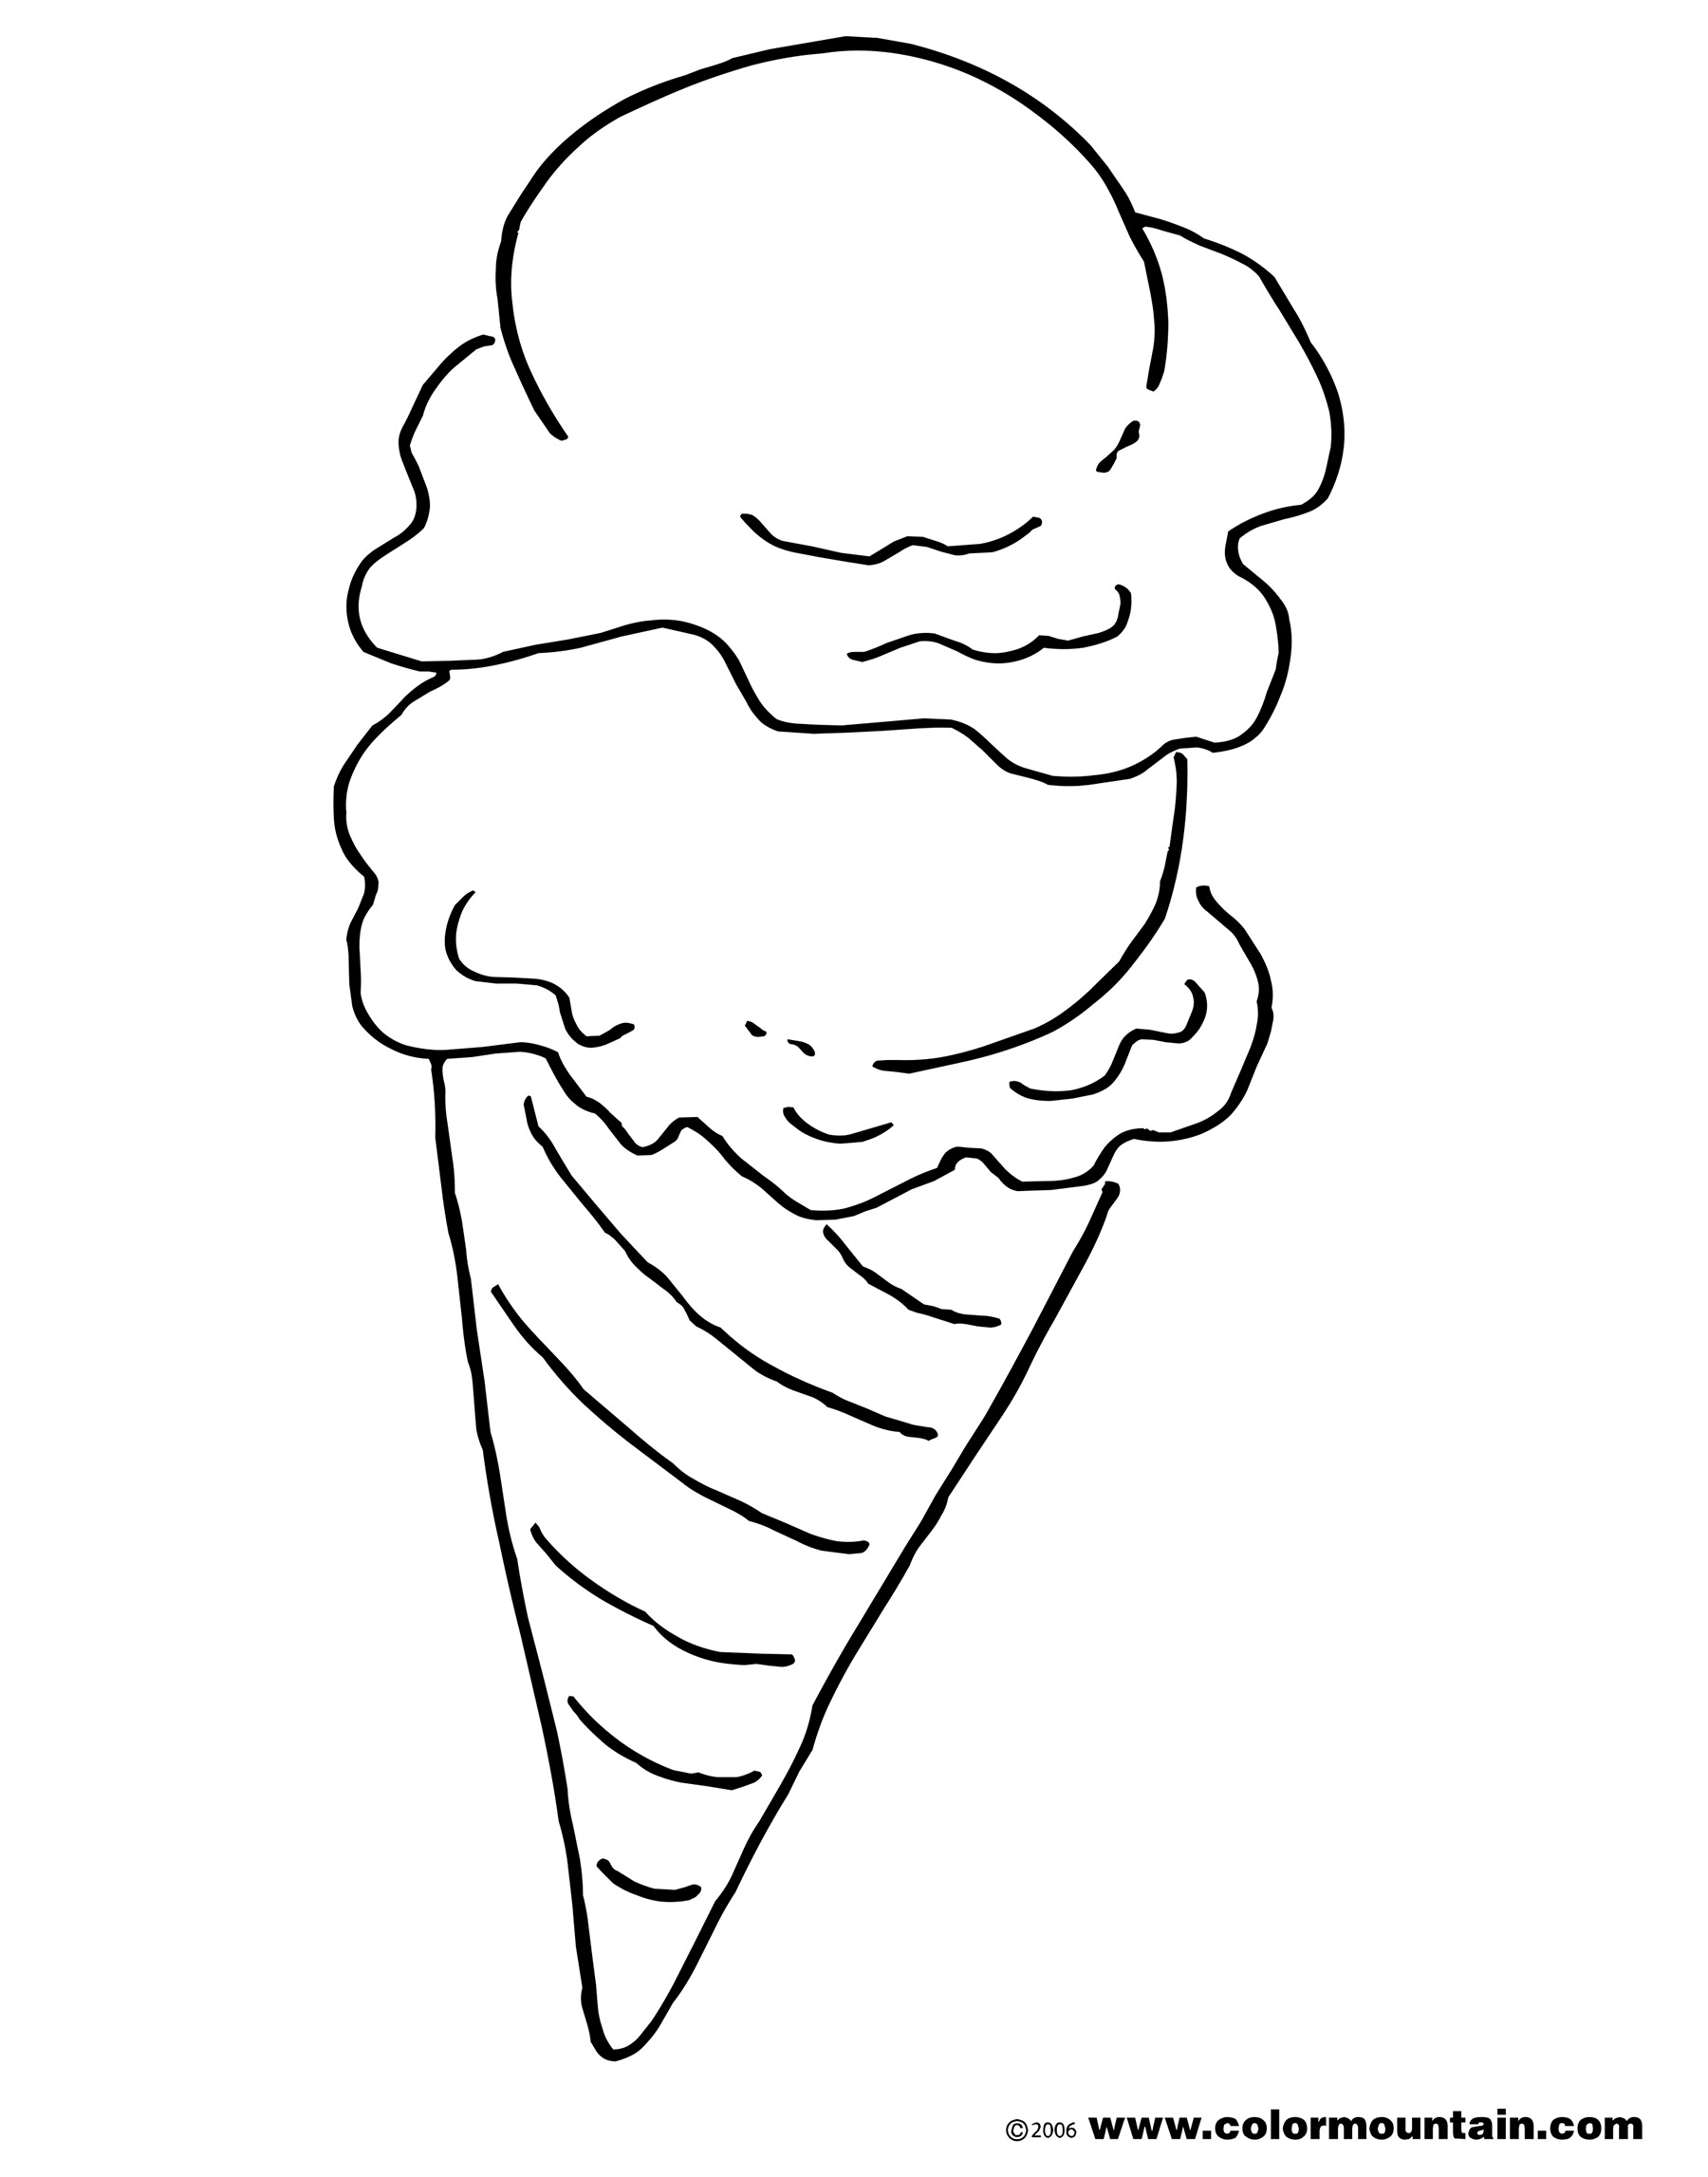 picture of ice cream cone to color snow cone coloring page at getcoloringscom free picture of cream color cone to ice